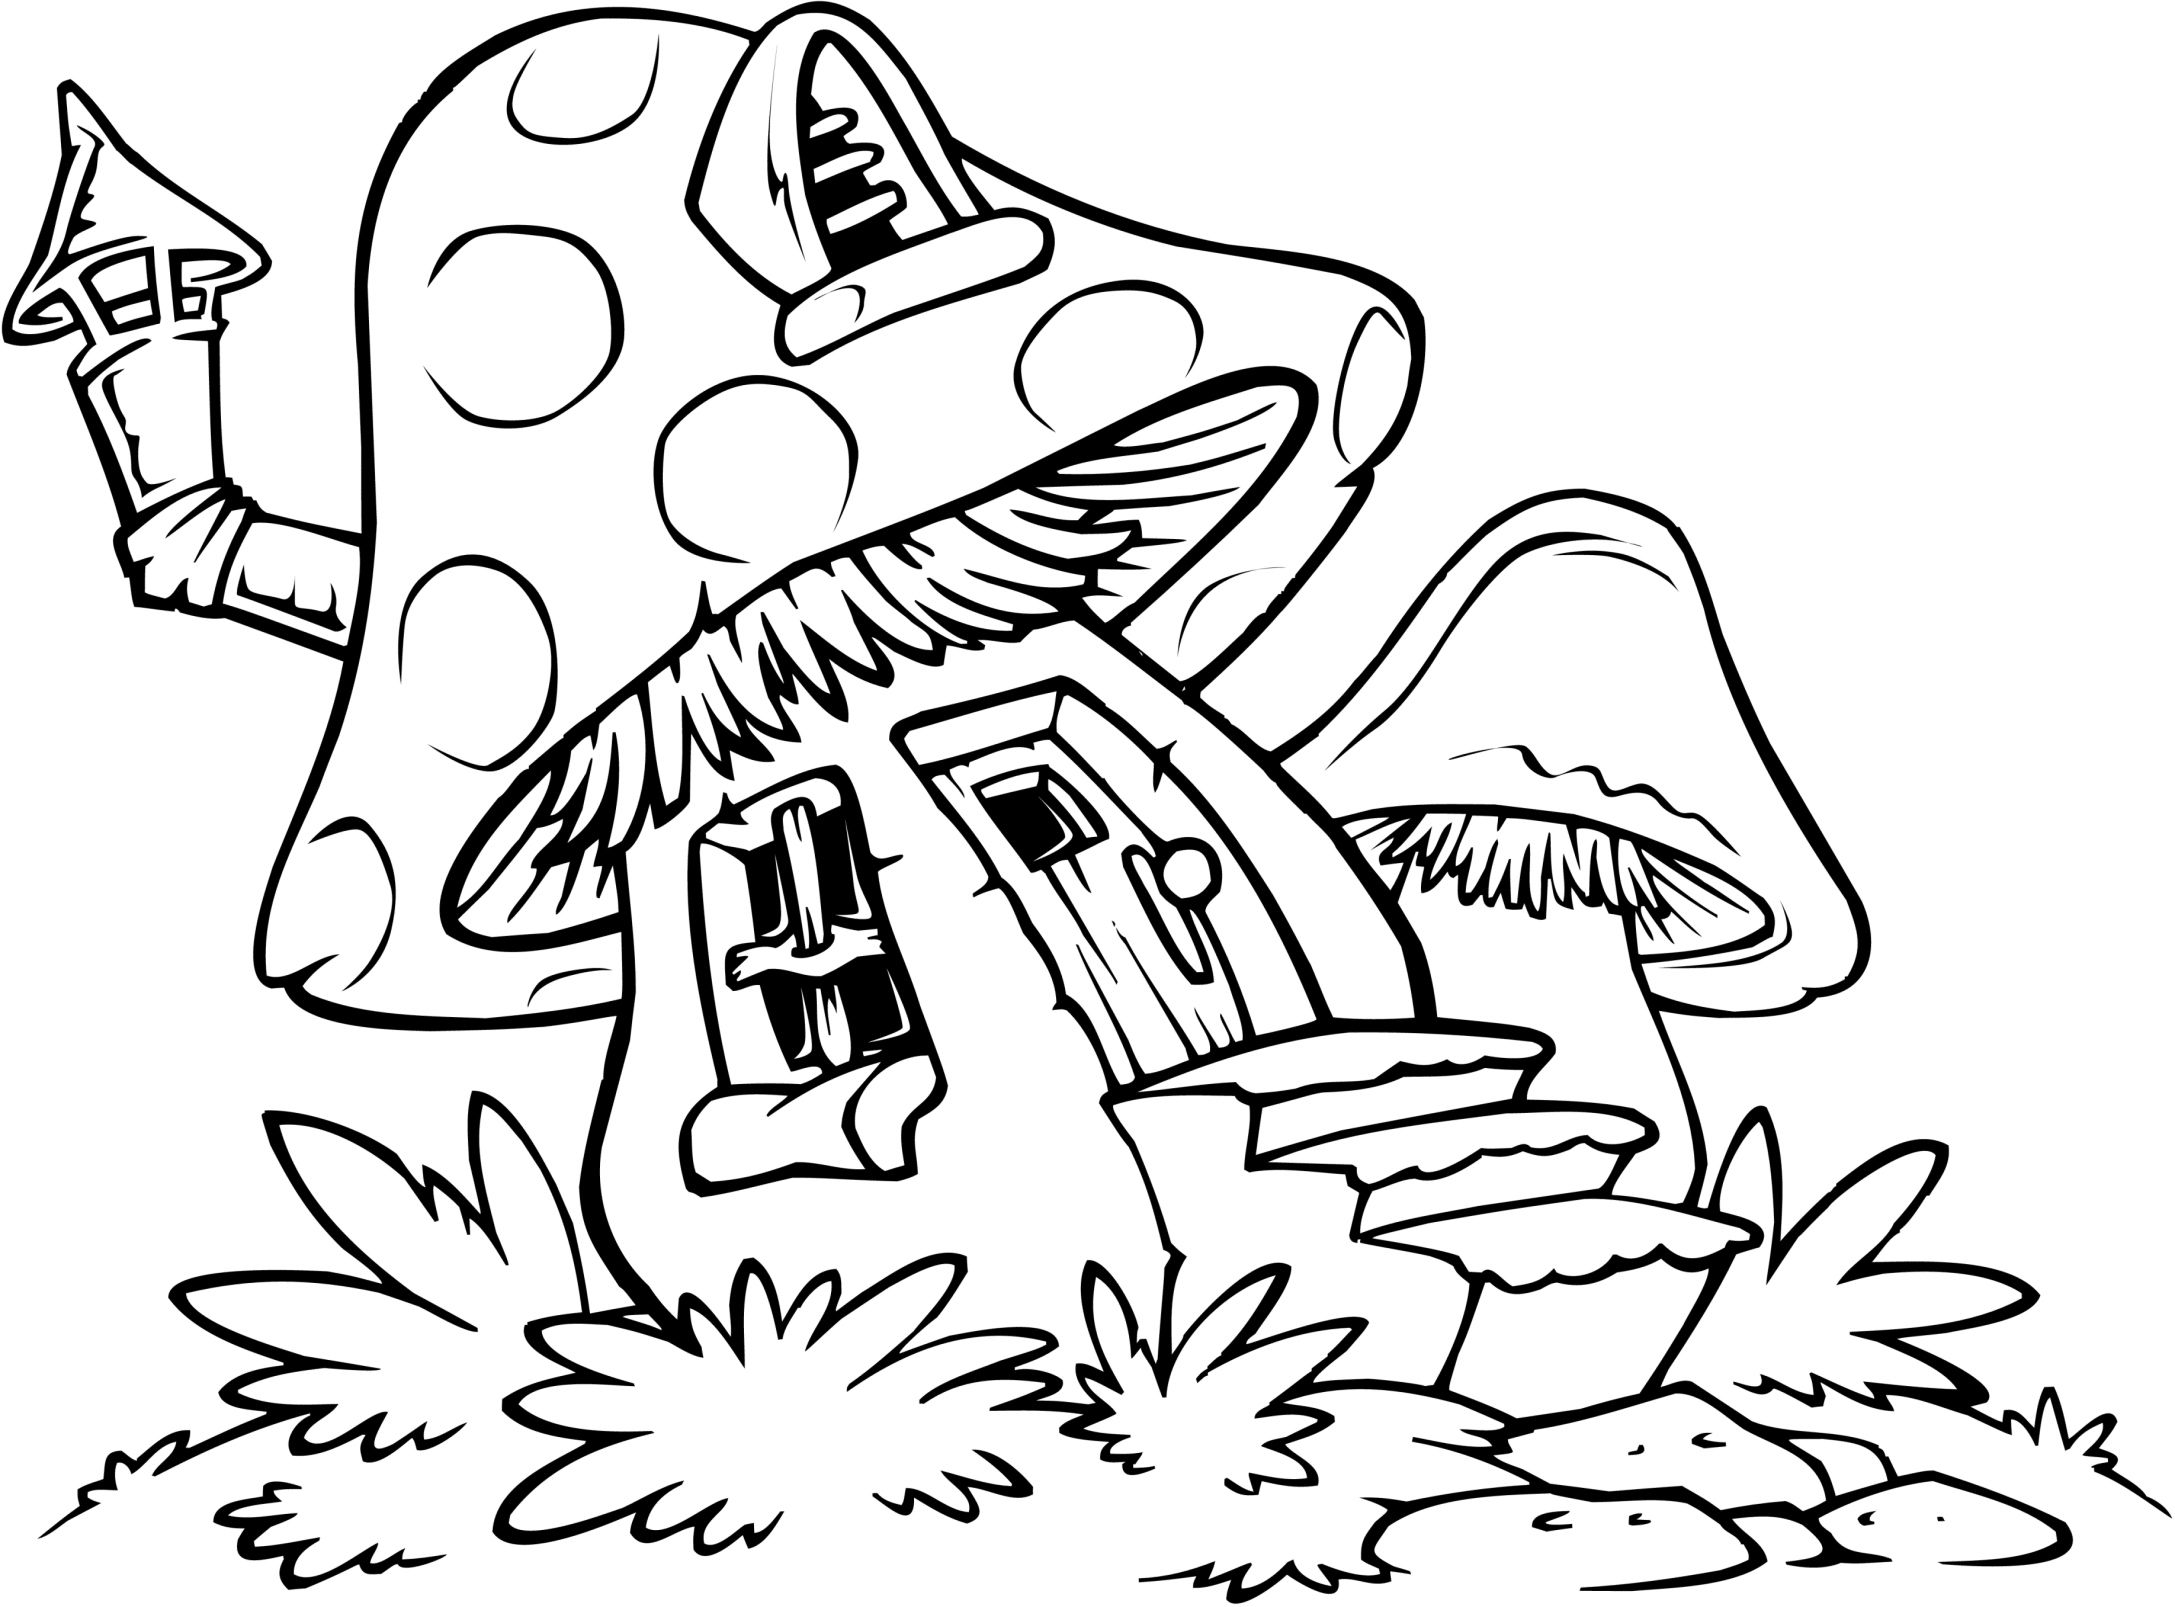 Printable Camplicated Coloring Pages